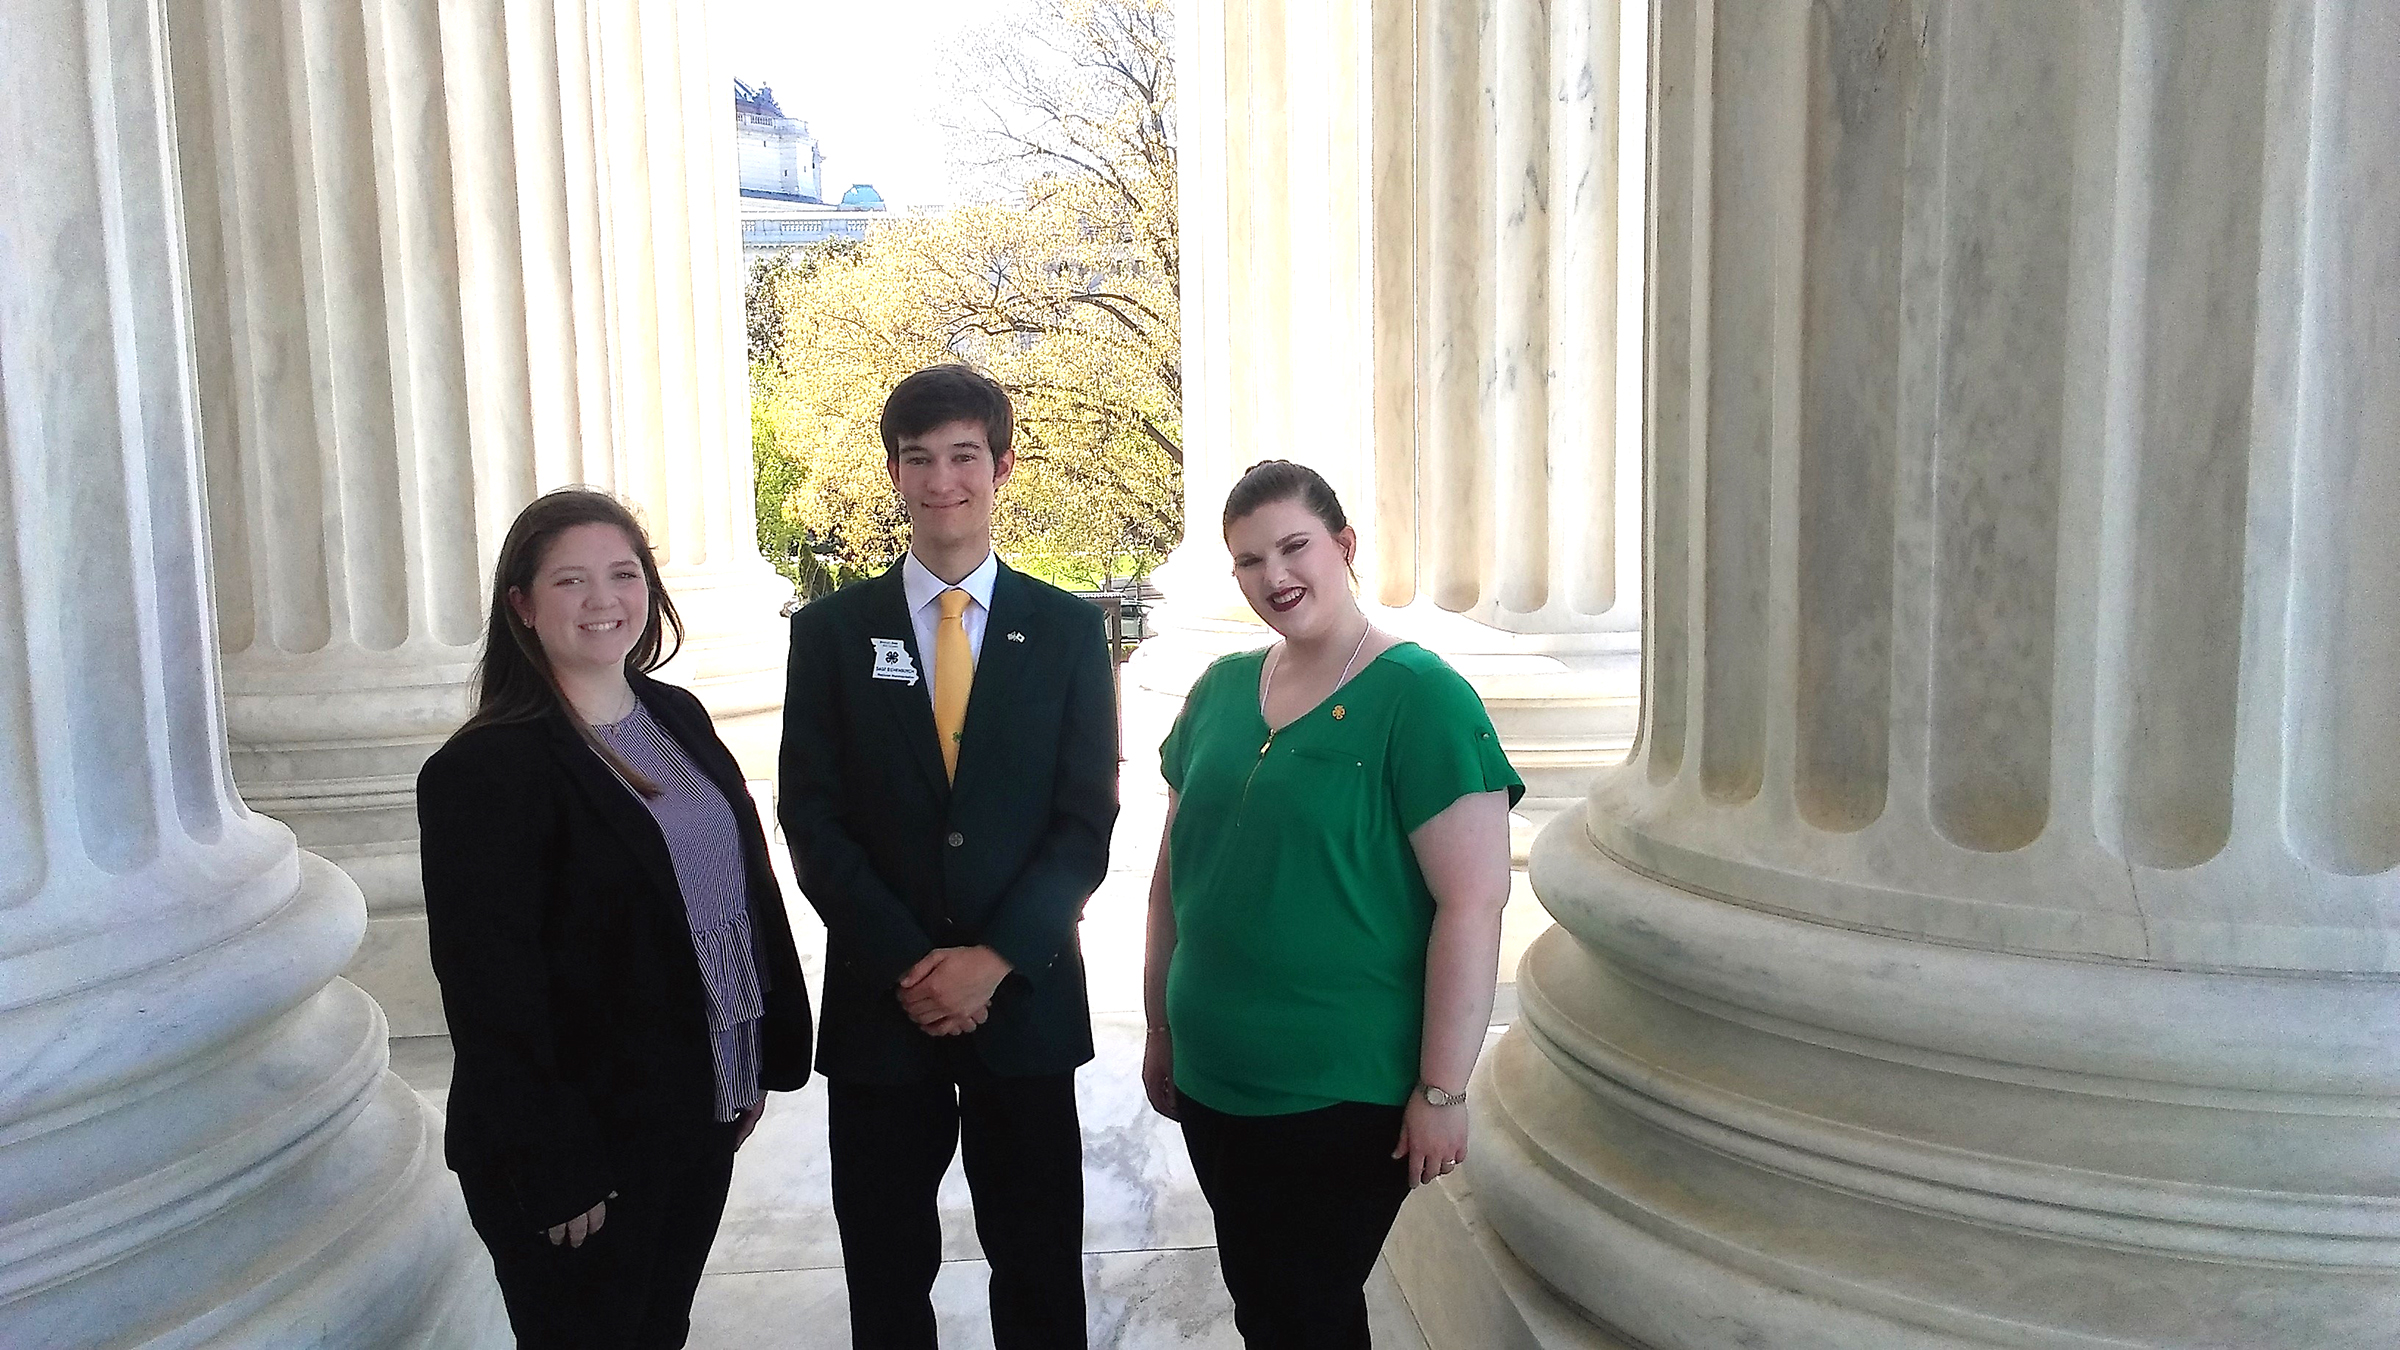 From left, Kayla Taylor, Sage Eichenburch and Rachel Grubbs in Washington, D.C. for the National 4-H Conference.